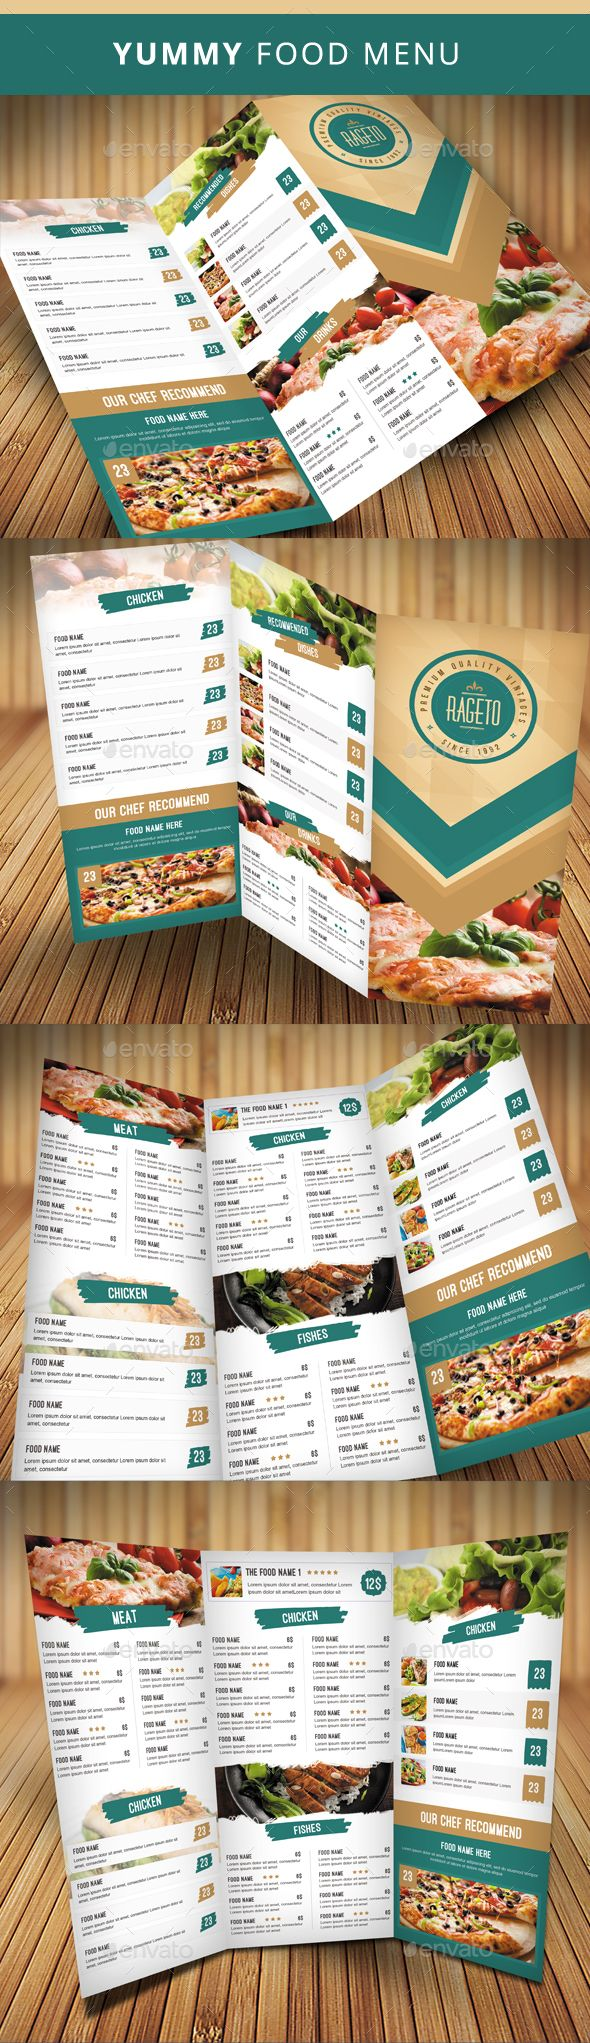 Clean Food Menu Template PSD. Download here: http://graphicriver.net/item/clean-food-menu-03/14768884?ref=ksioks